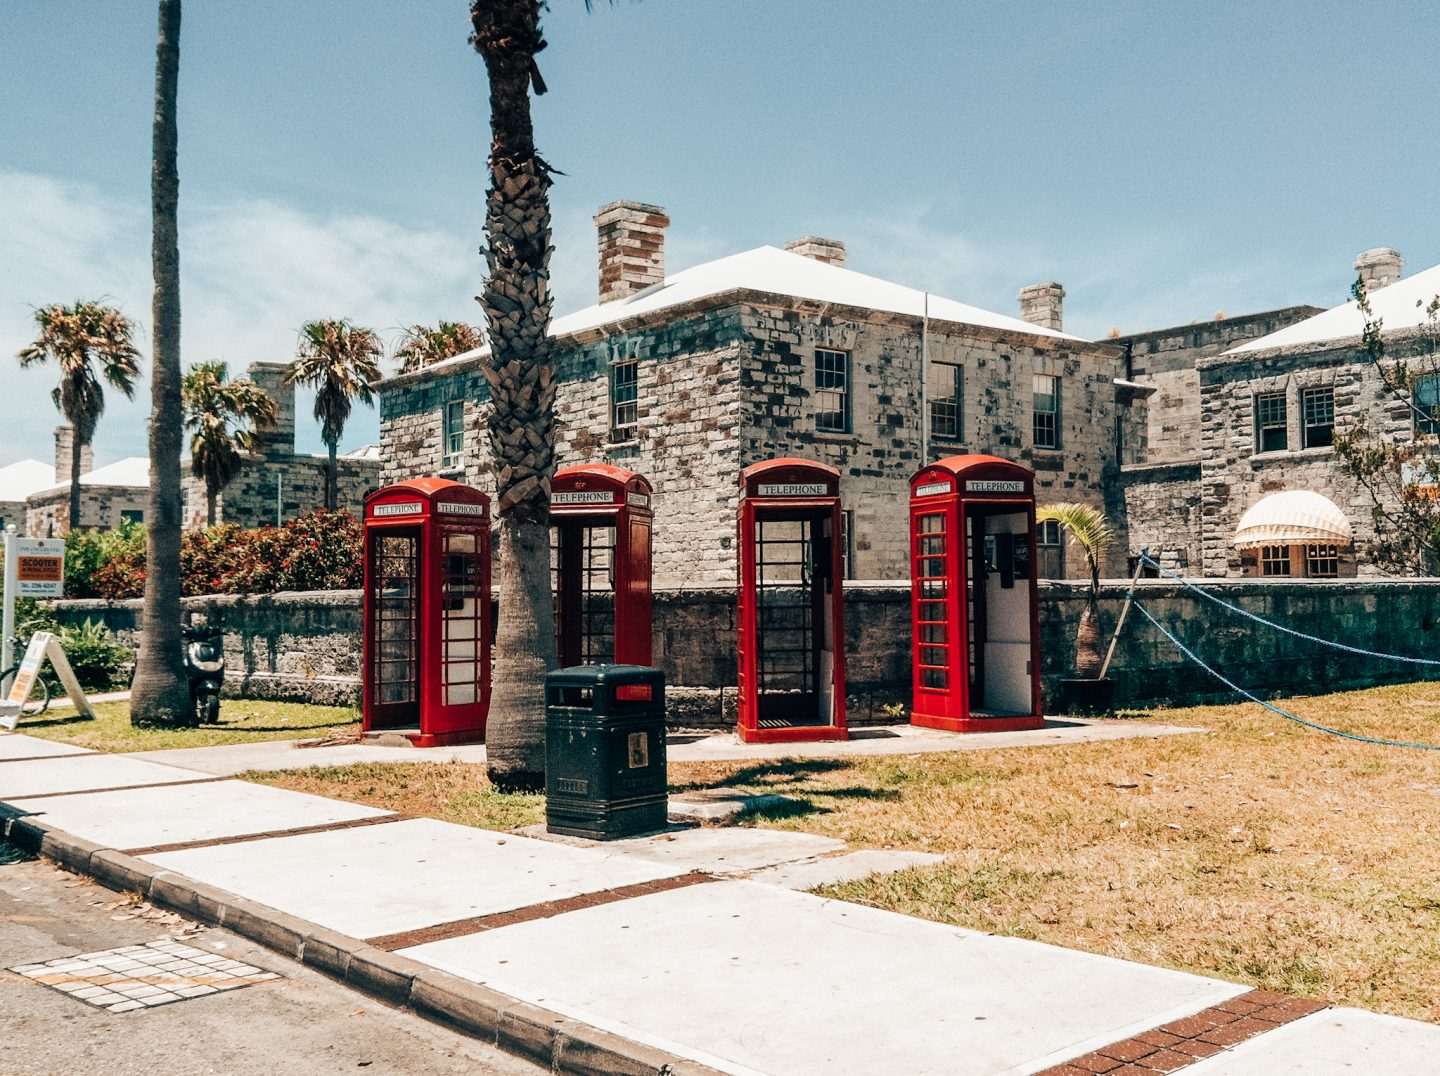 How To Spend A Week In Bermuda: Travel Guide